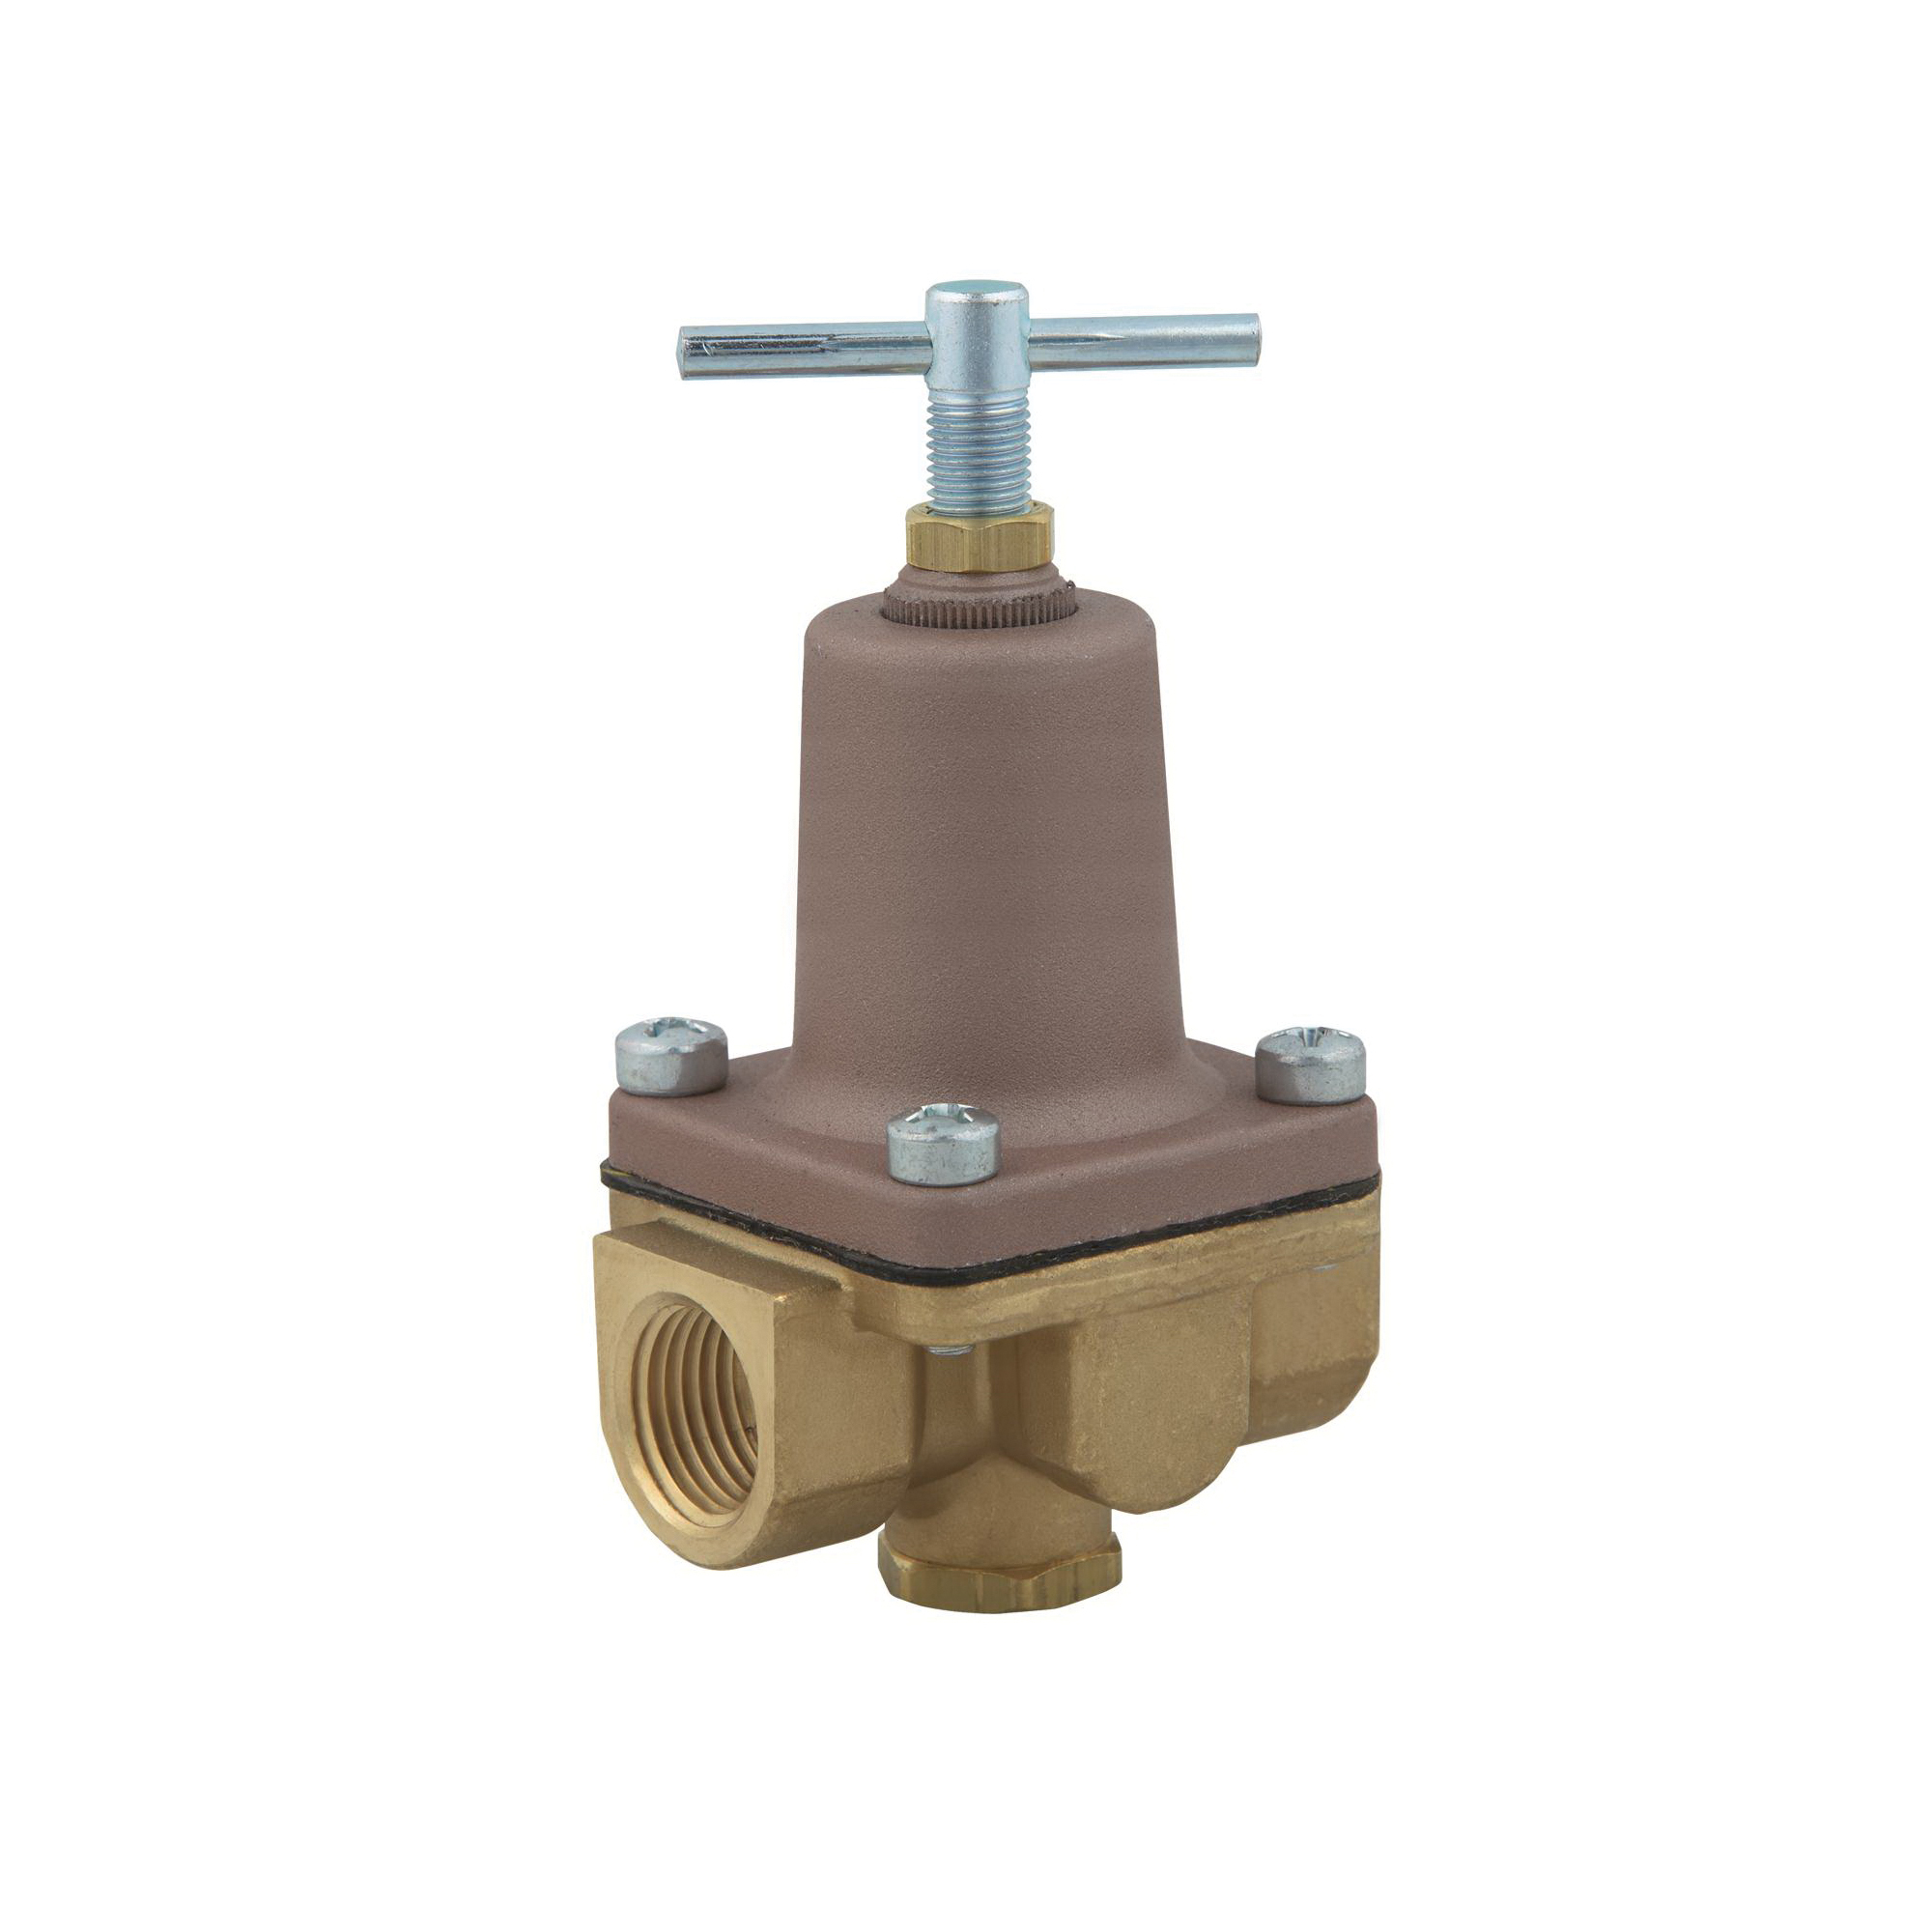 WATTS® 0009818 LF26A 2-Way Small Pressure Regulator, 1/2 in, FNPT, 300 psi, Brass Body